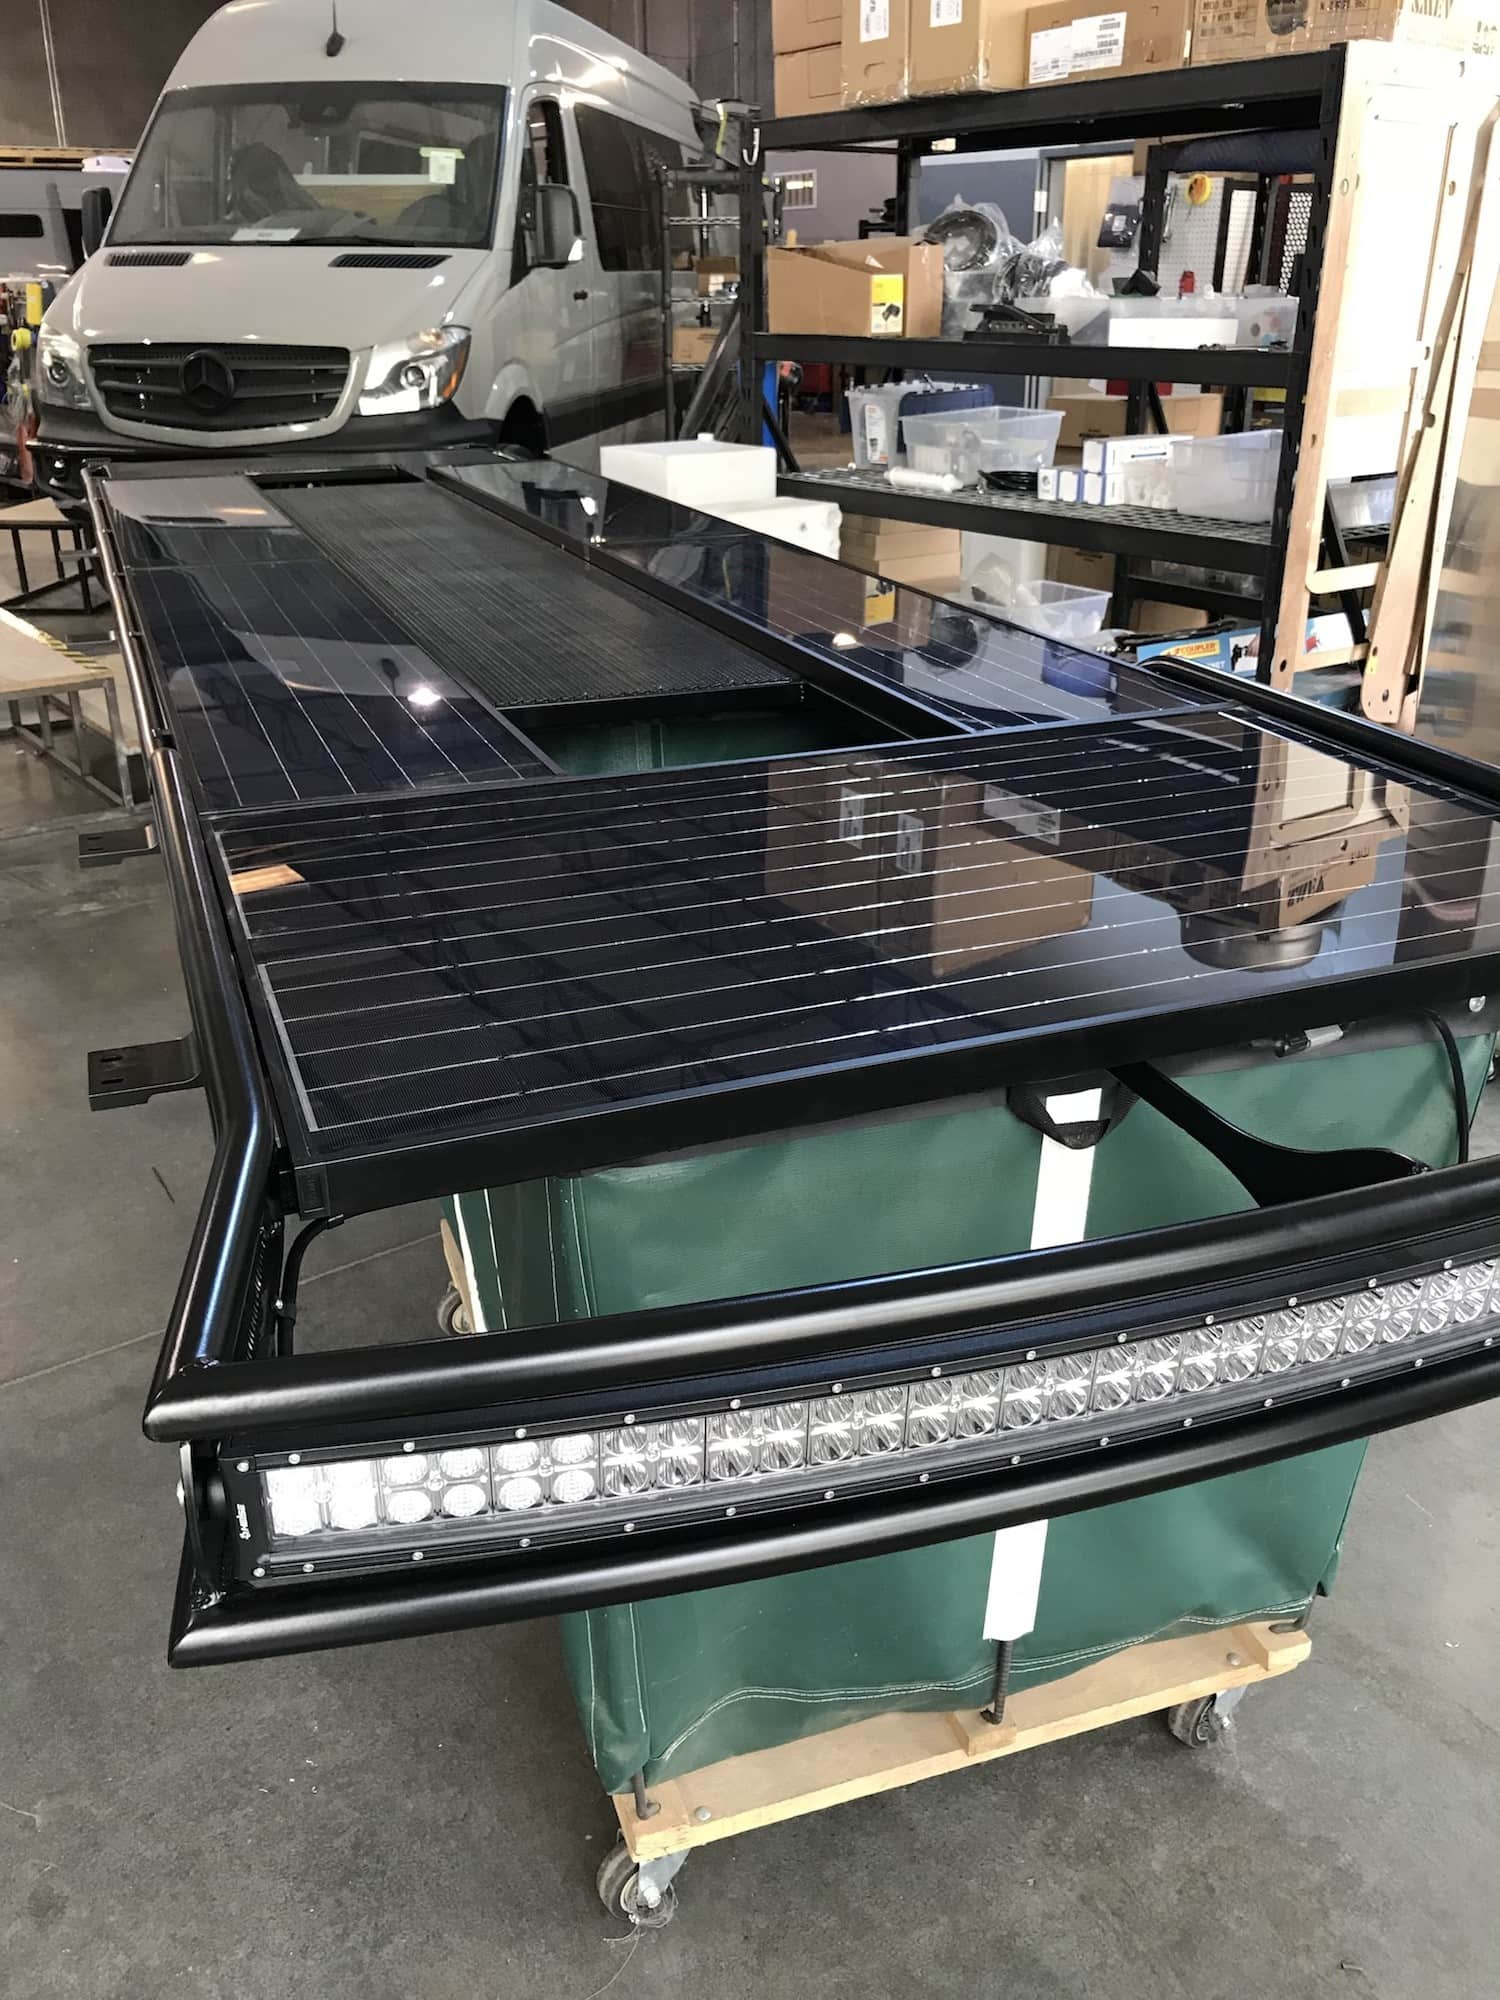 Learn about different Sprinter Van solar panel setups, batteries and inverters & how to design the perfect electrical setup in your Sprinter conversion.